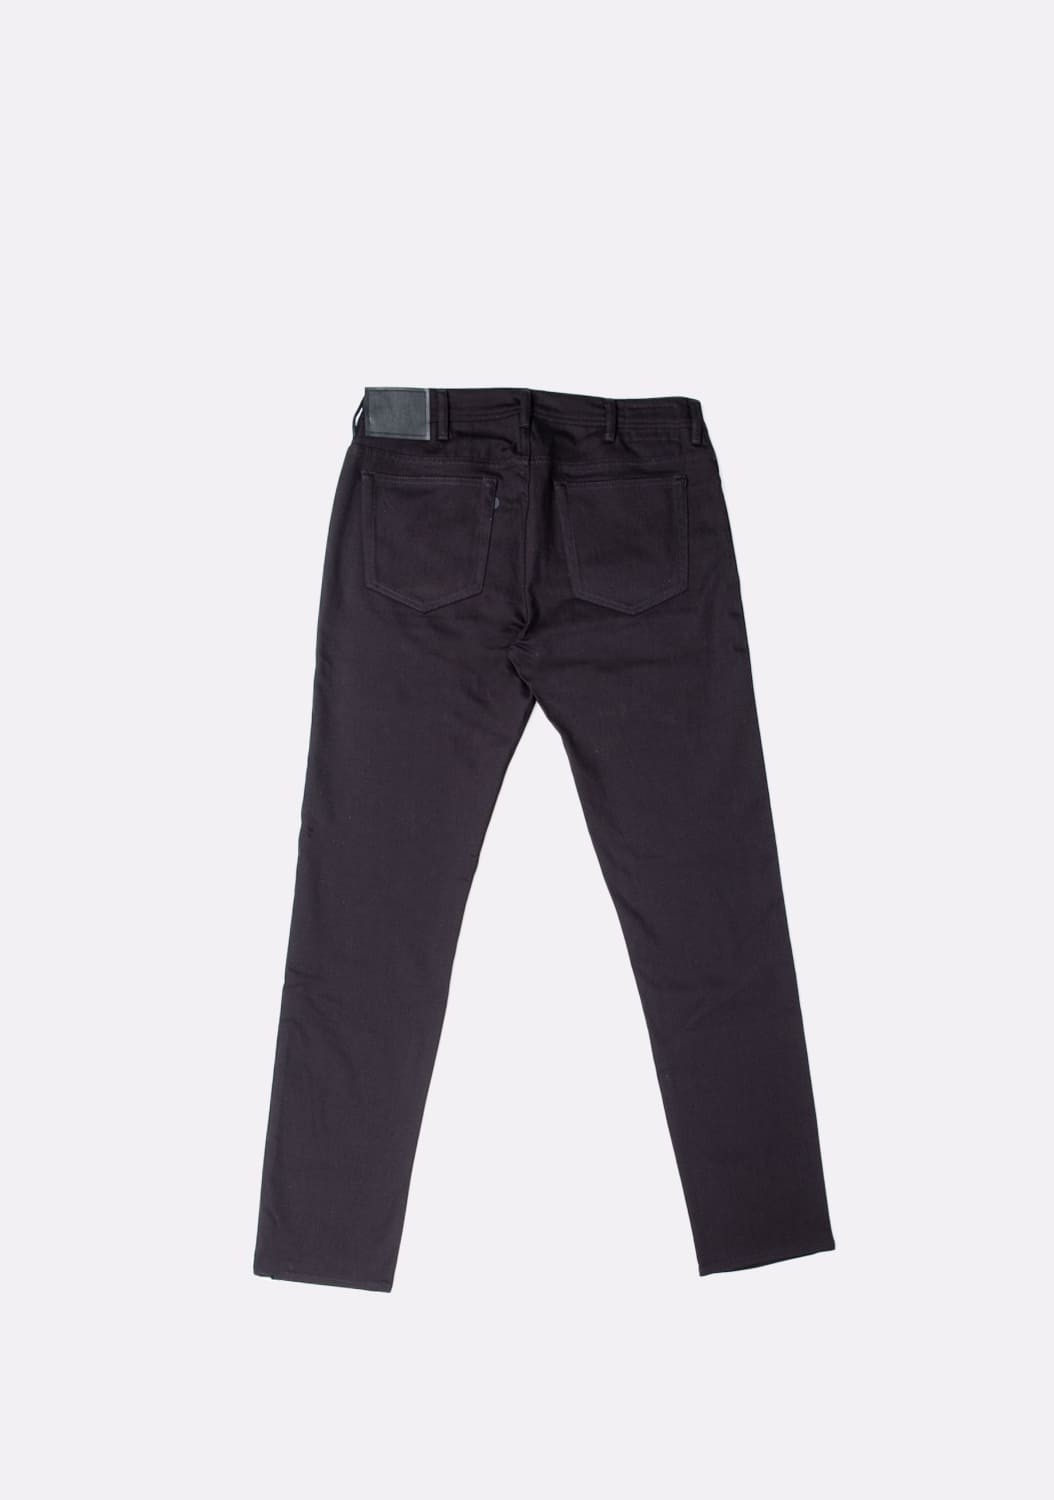 Acne-Studios-Blå-Konst-North-Stay-Black-dzinsai-dydis-34-32 (8)